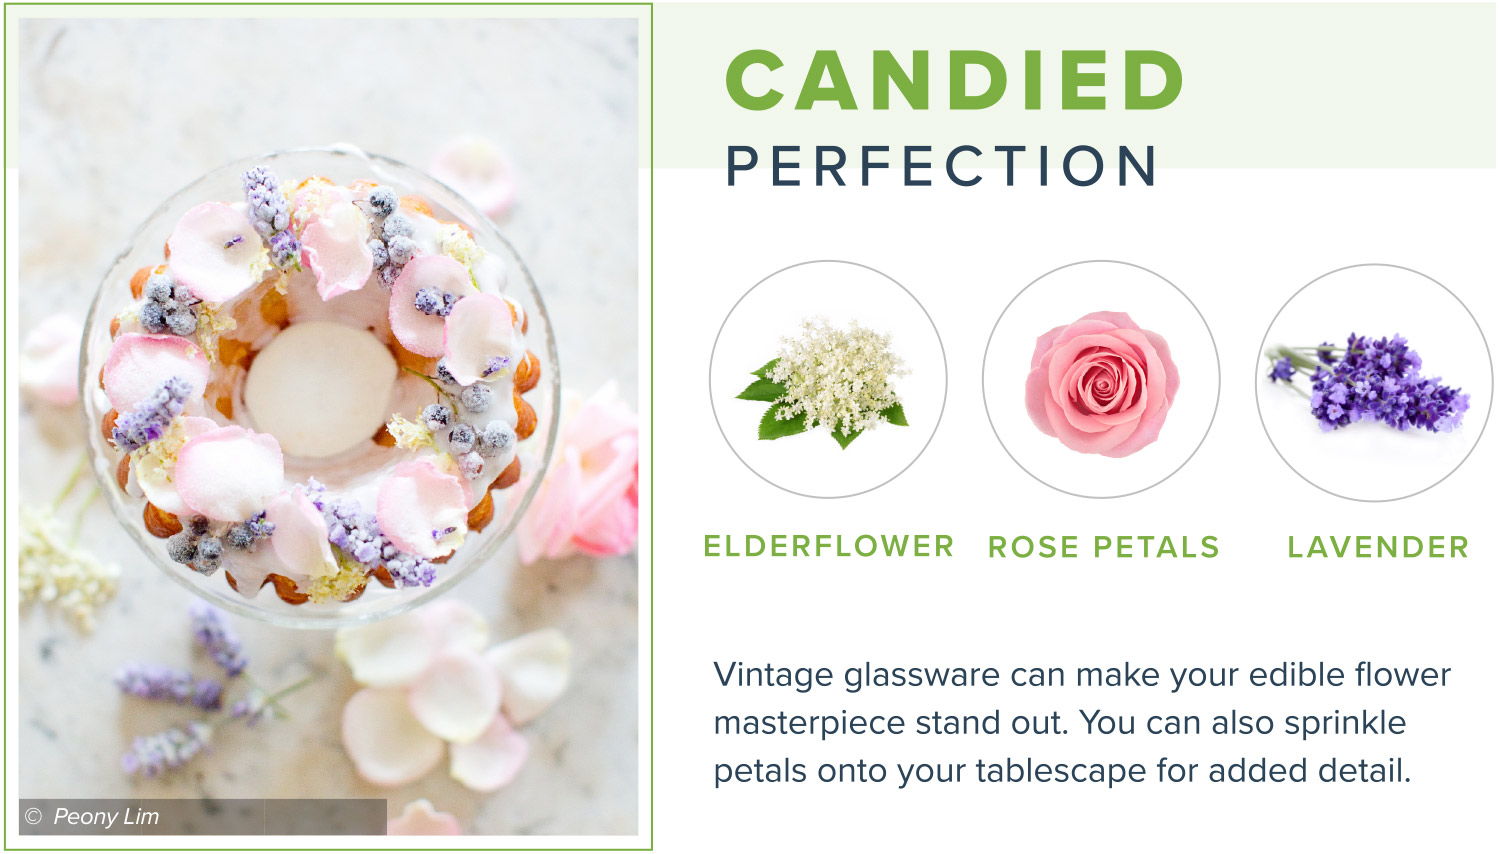 edible flowers candied perfection